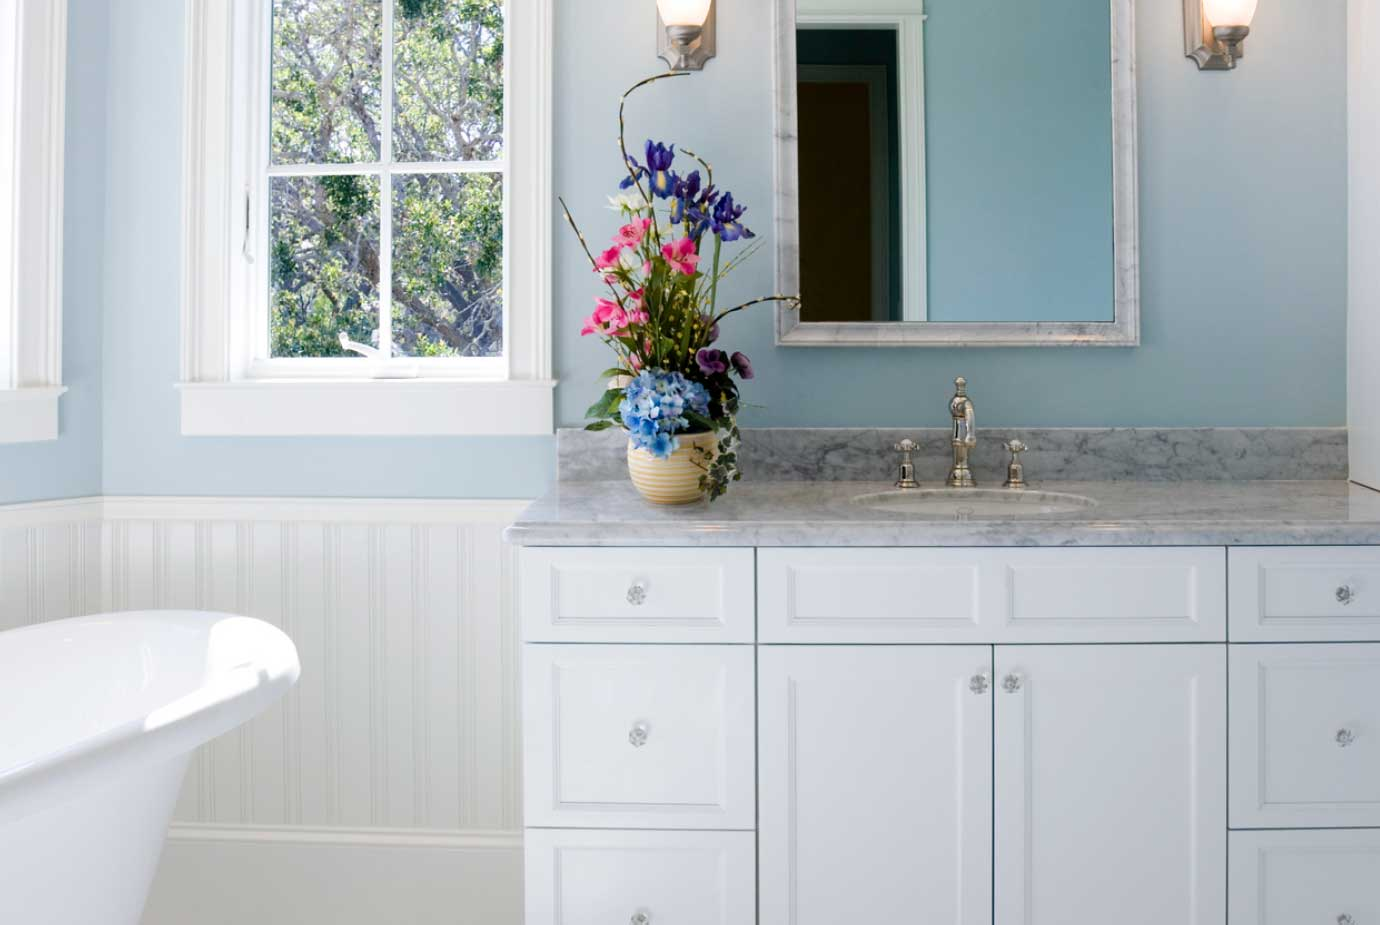 How to Make a Fabulous Frame for your Bathroom Mirror